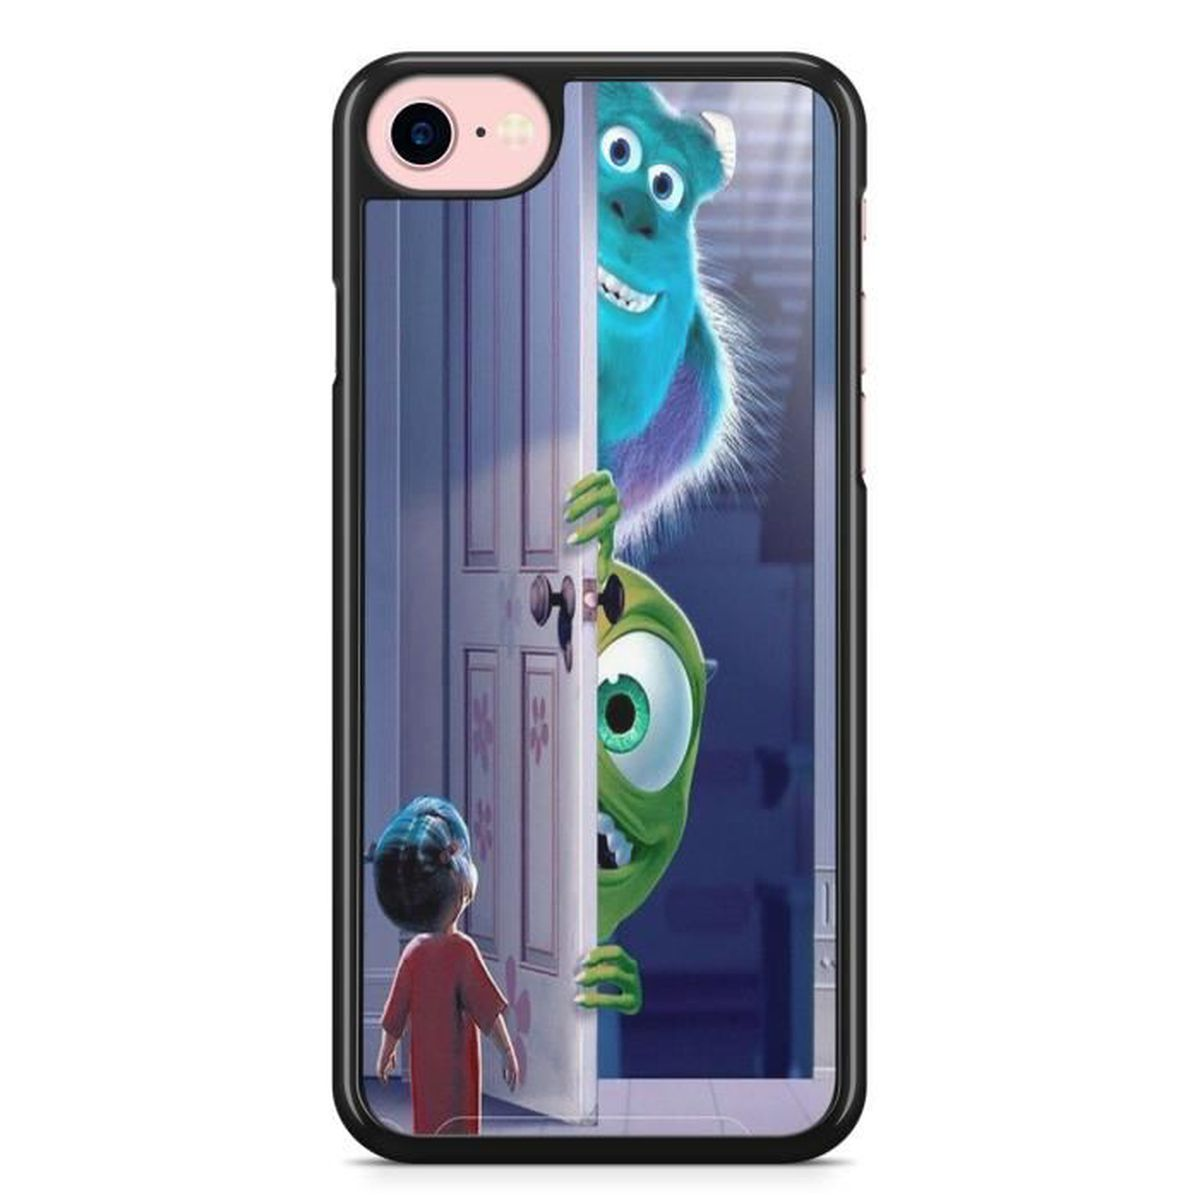 coque iphone 8 monstre et cie